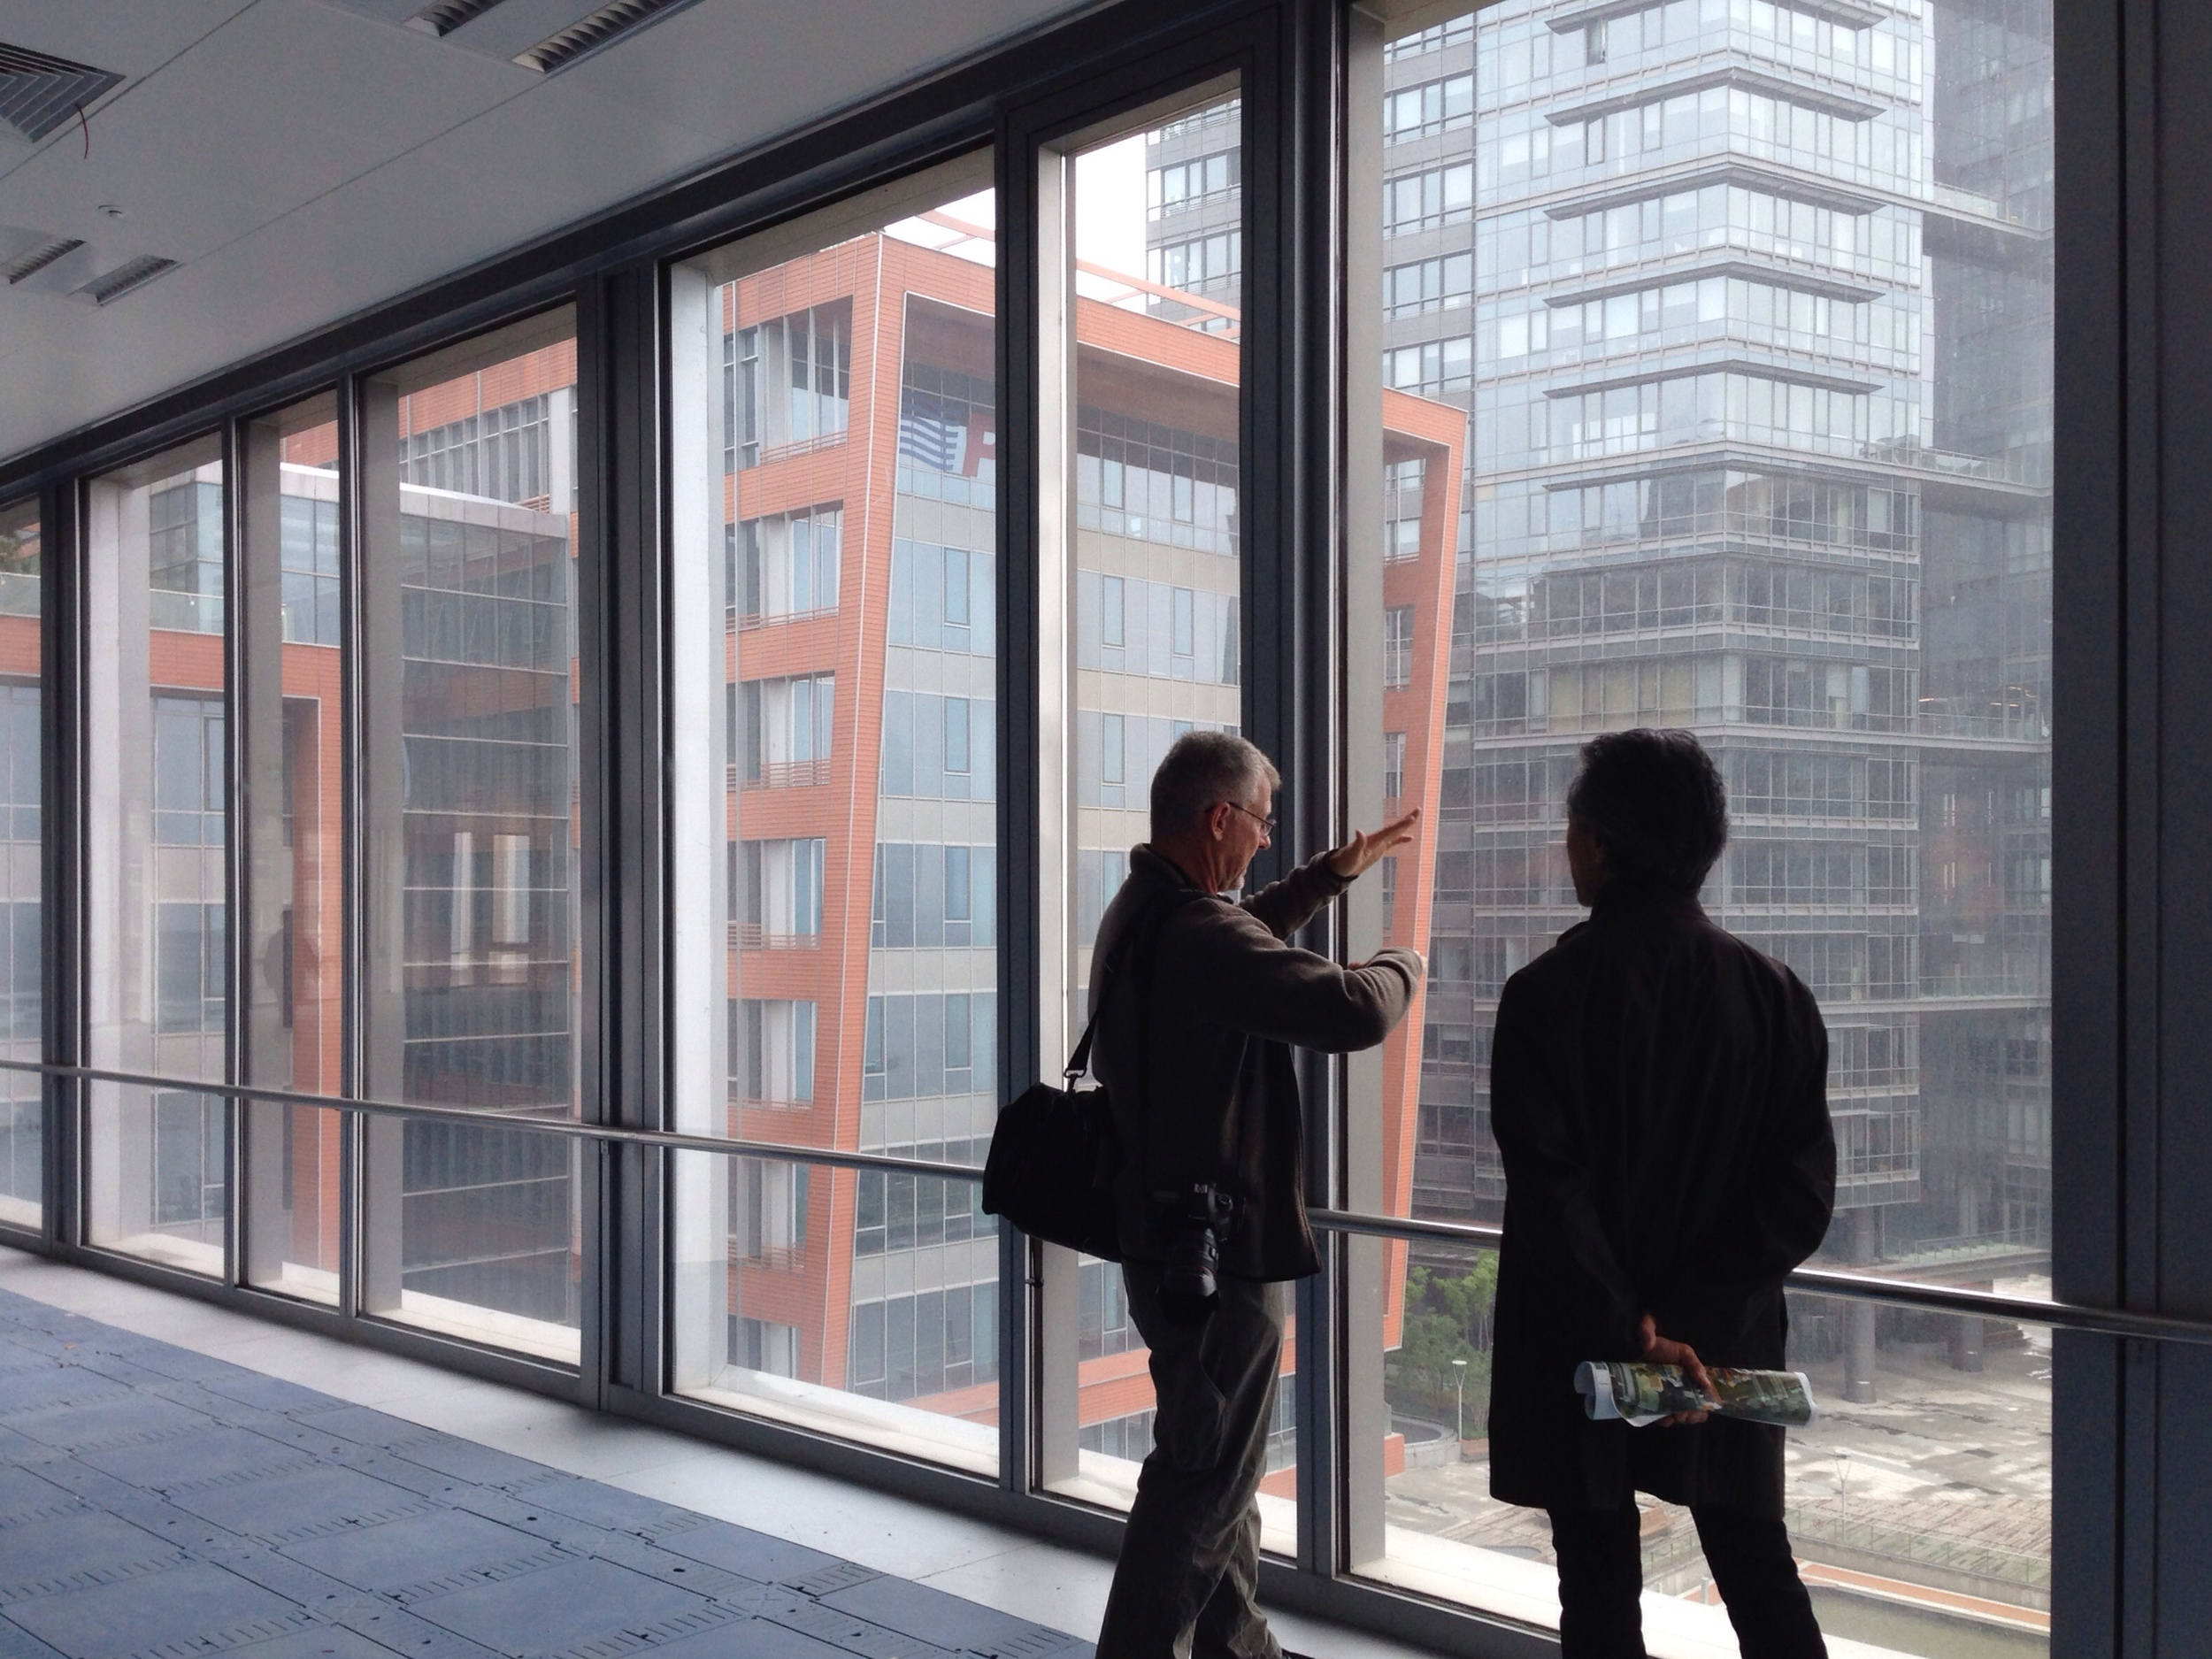 The photographer and architect discussing the project. You can see two of our buildings through the window, we are standing in a third and two more are out of view.